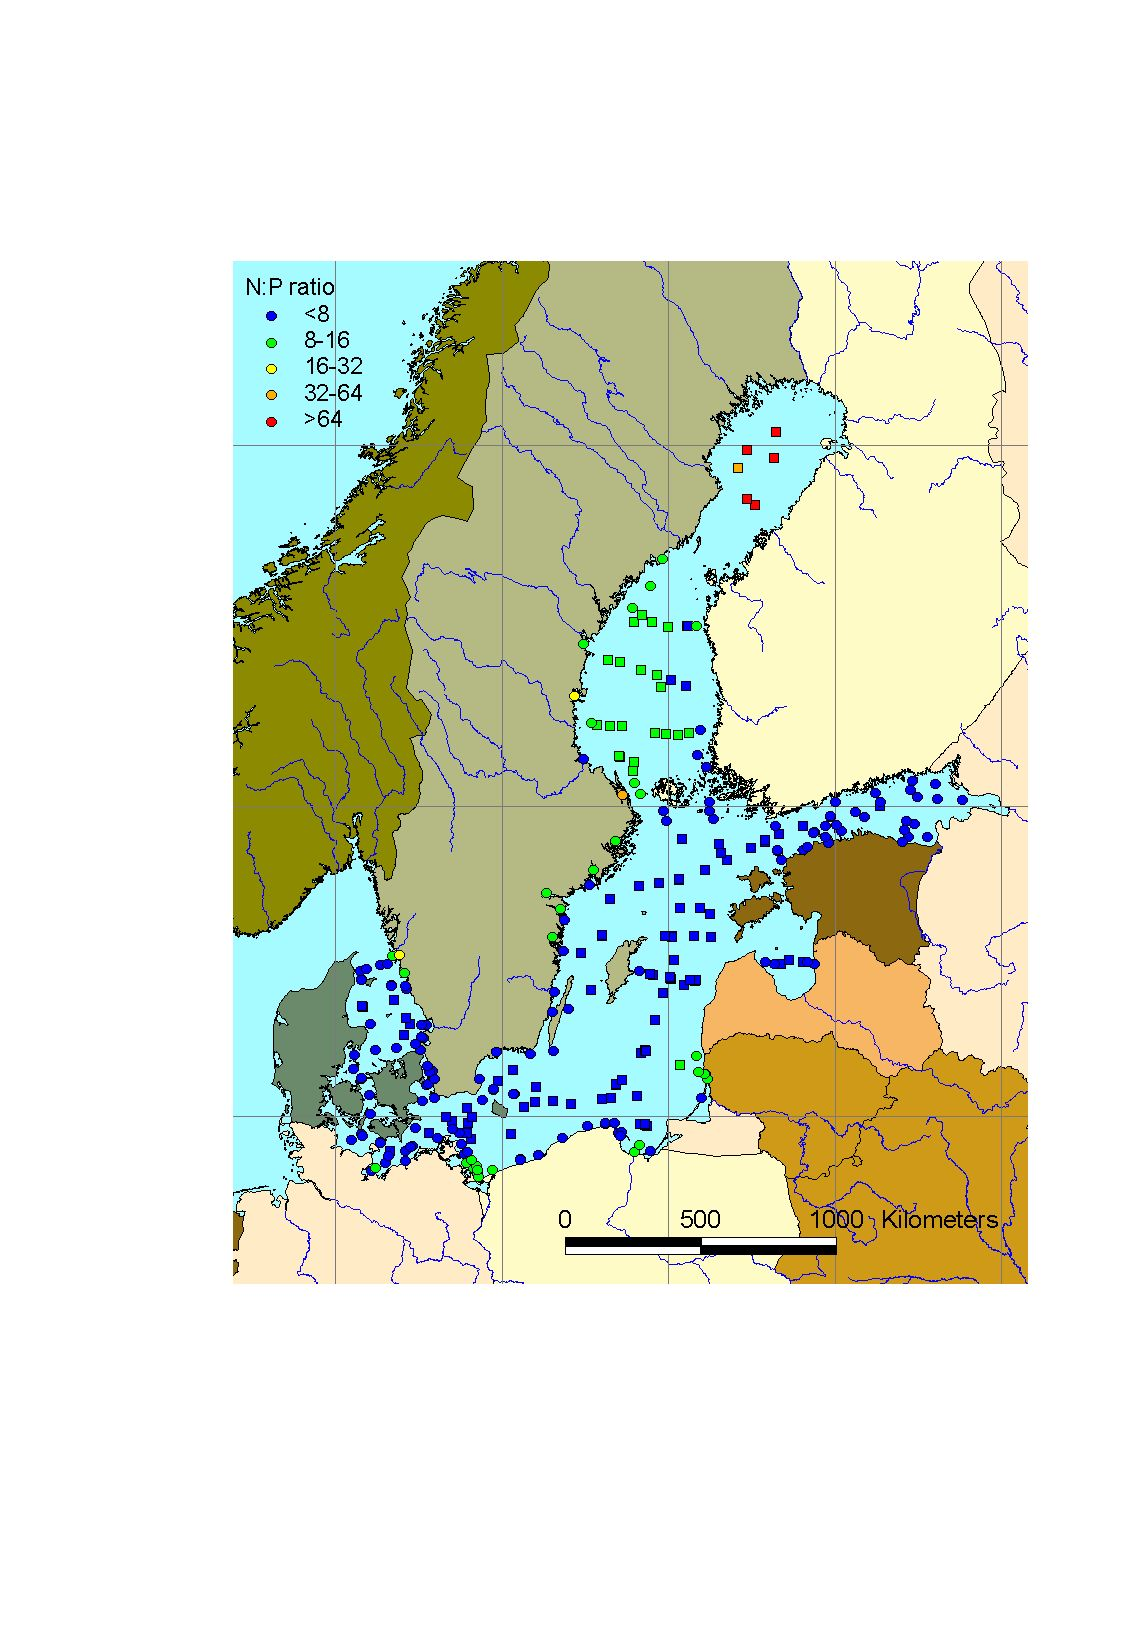 Mean winter surface nitrate/phosphate-ratio in the Baltic Sea Area, 2003